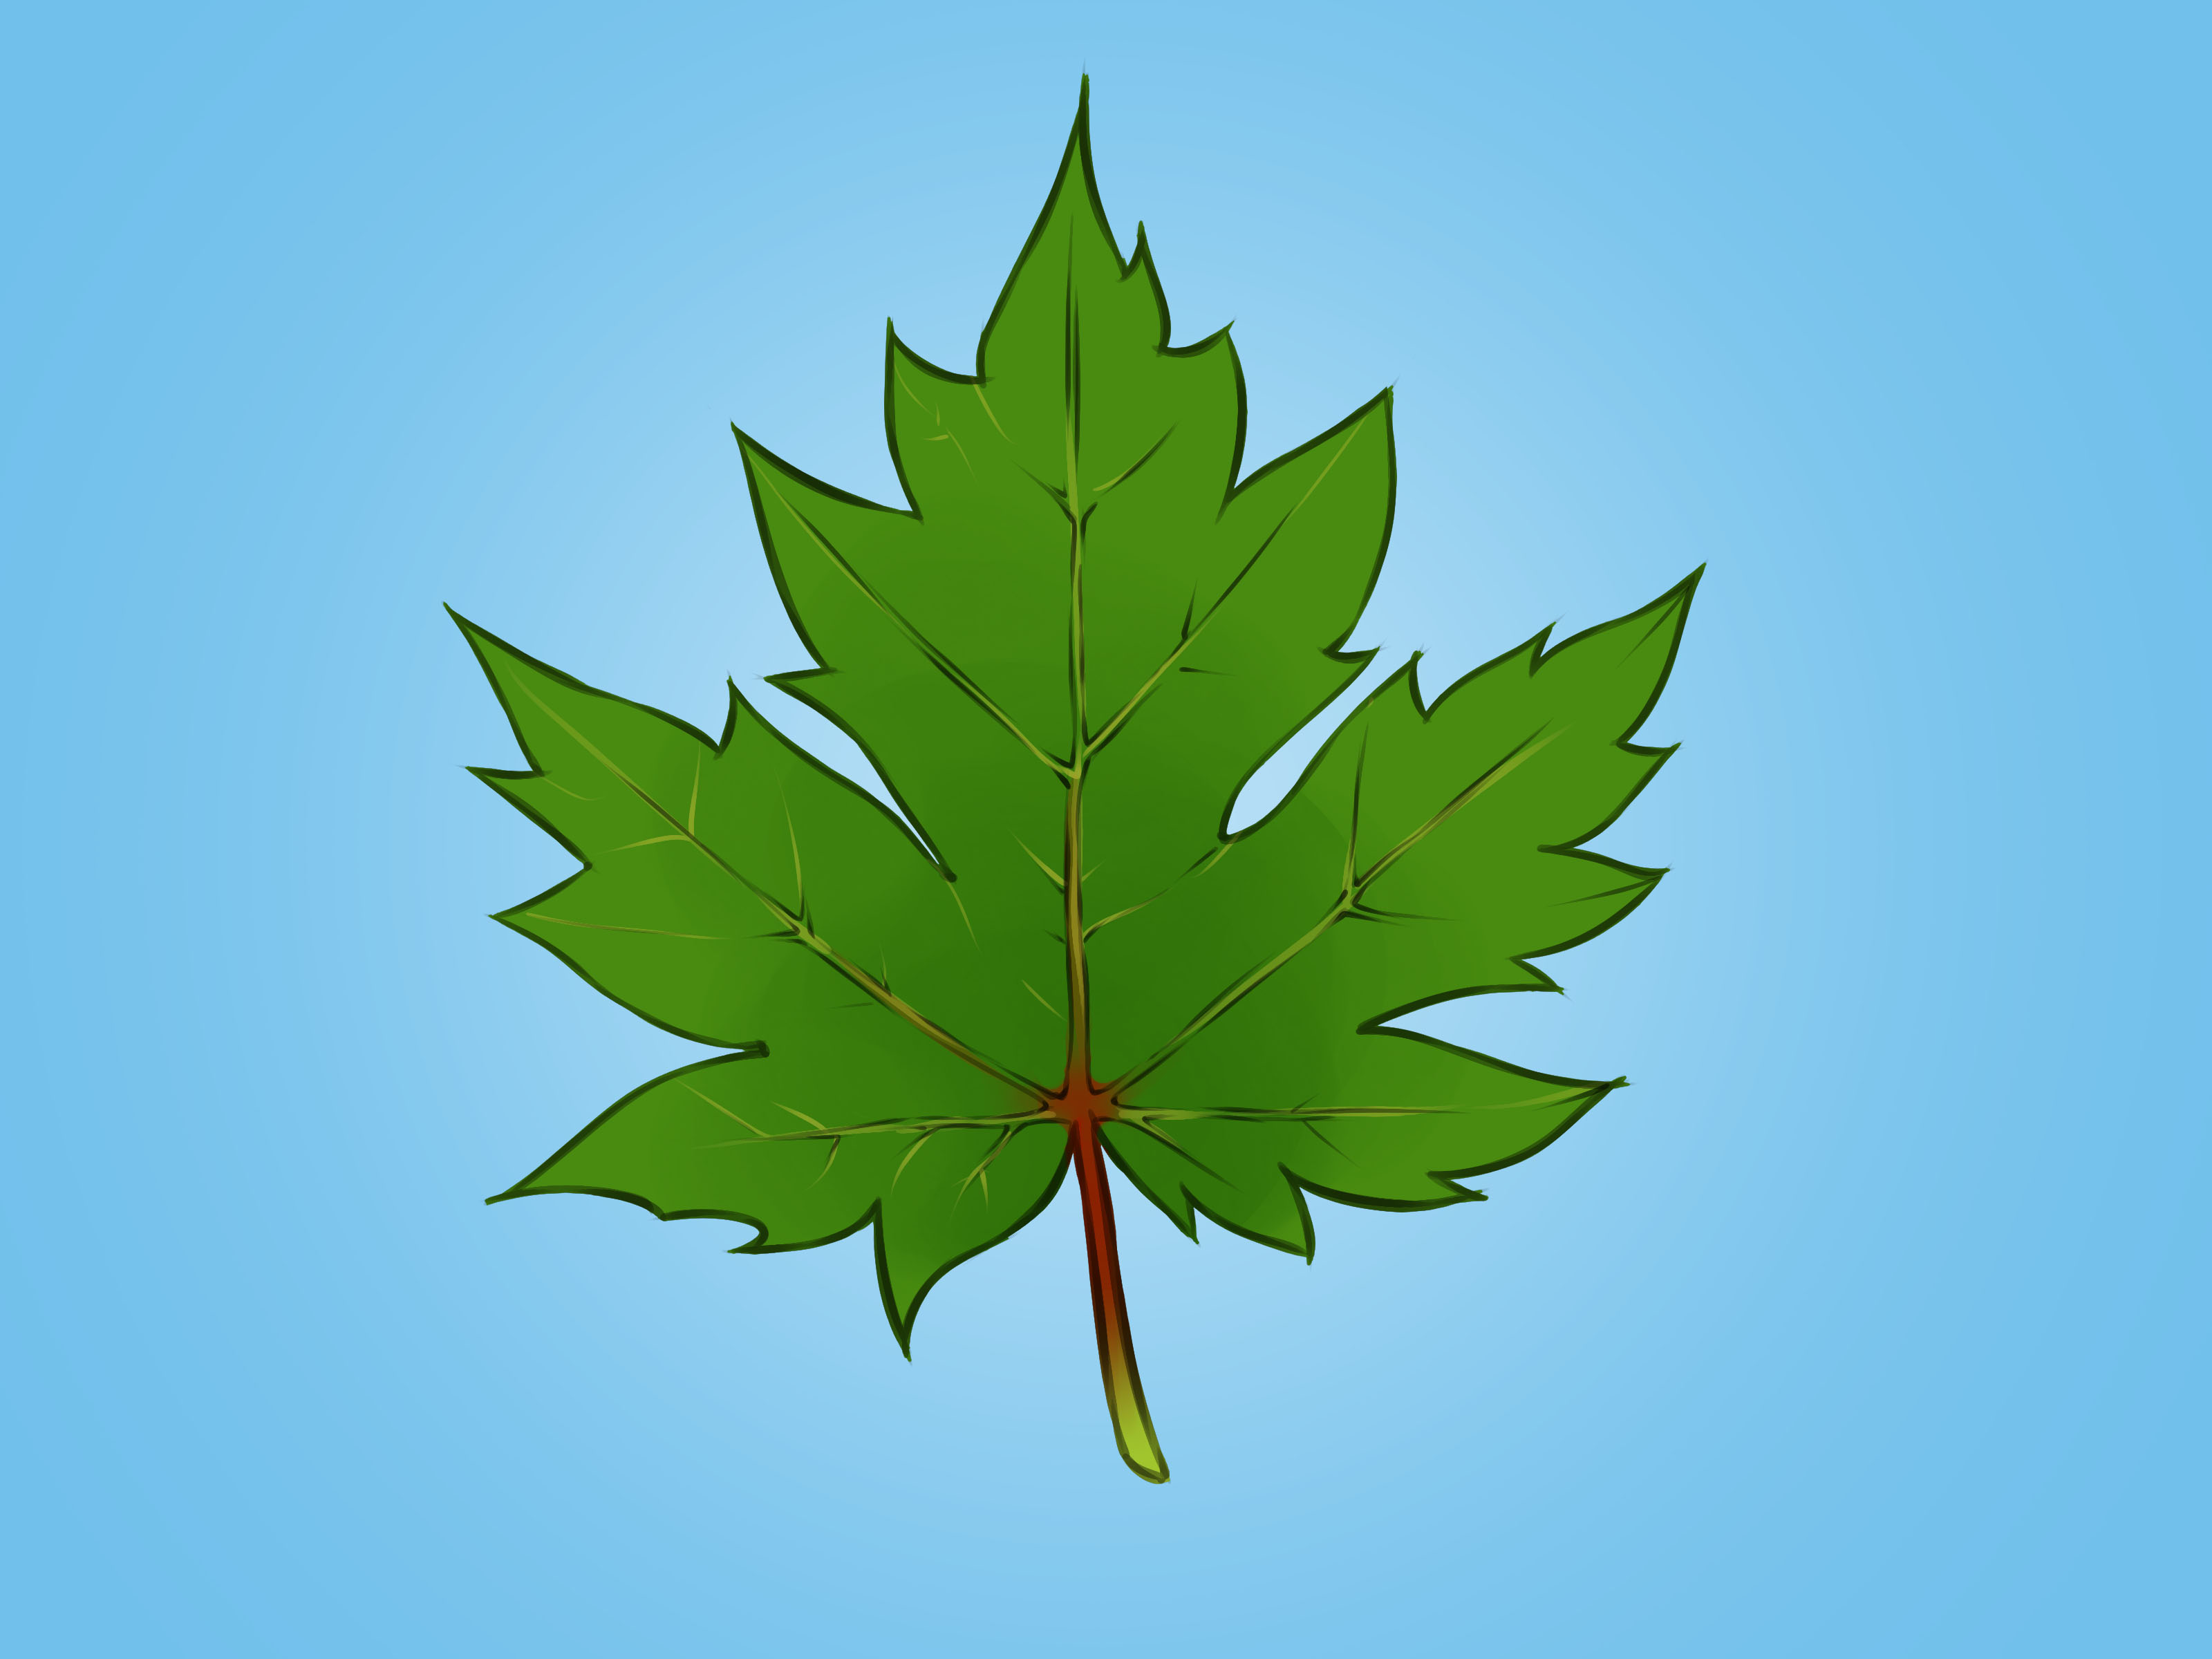 3200x2400 How To Draw A Maple Leaf 12 Steps (With Pictures)